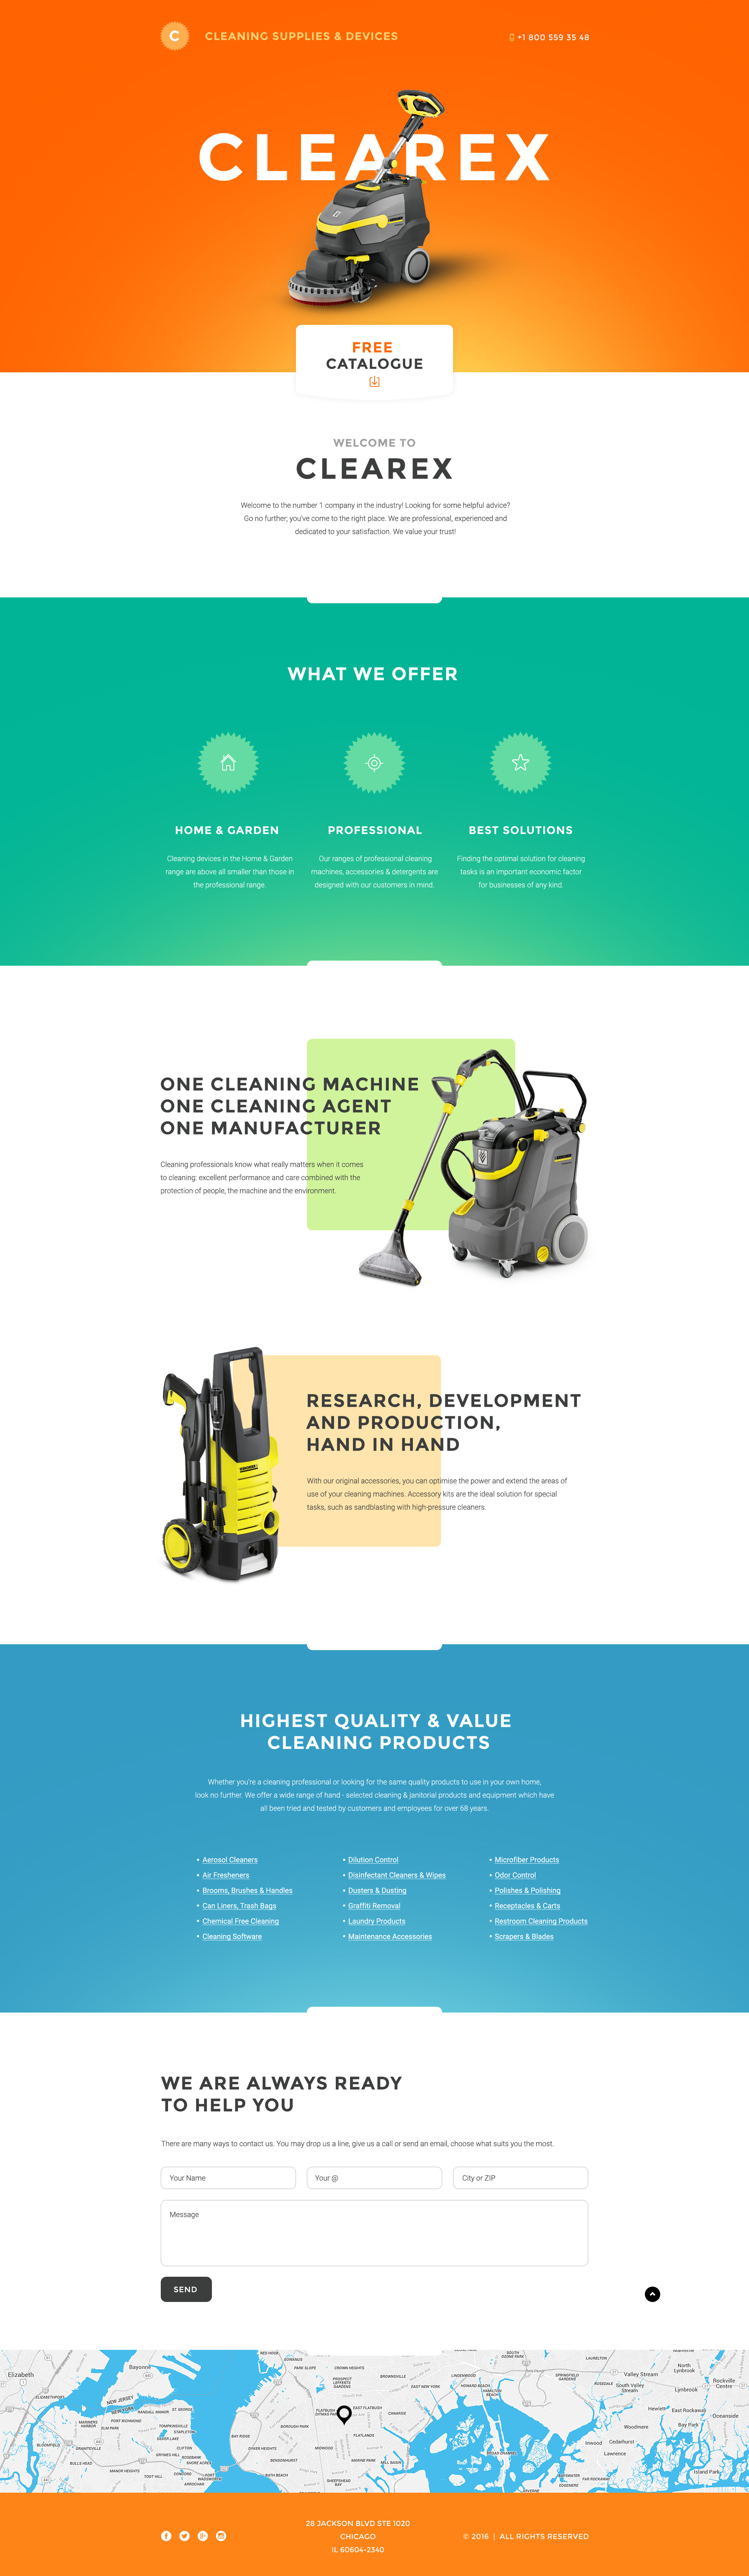 cleaning products landing page template. Black Bedroom Furniture Sets. Home Design Ideas